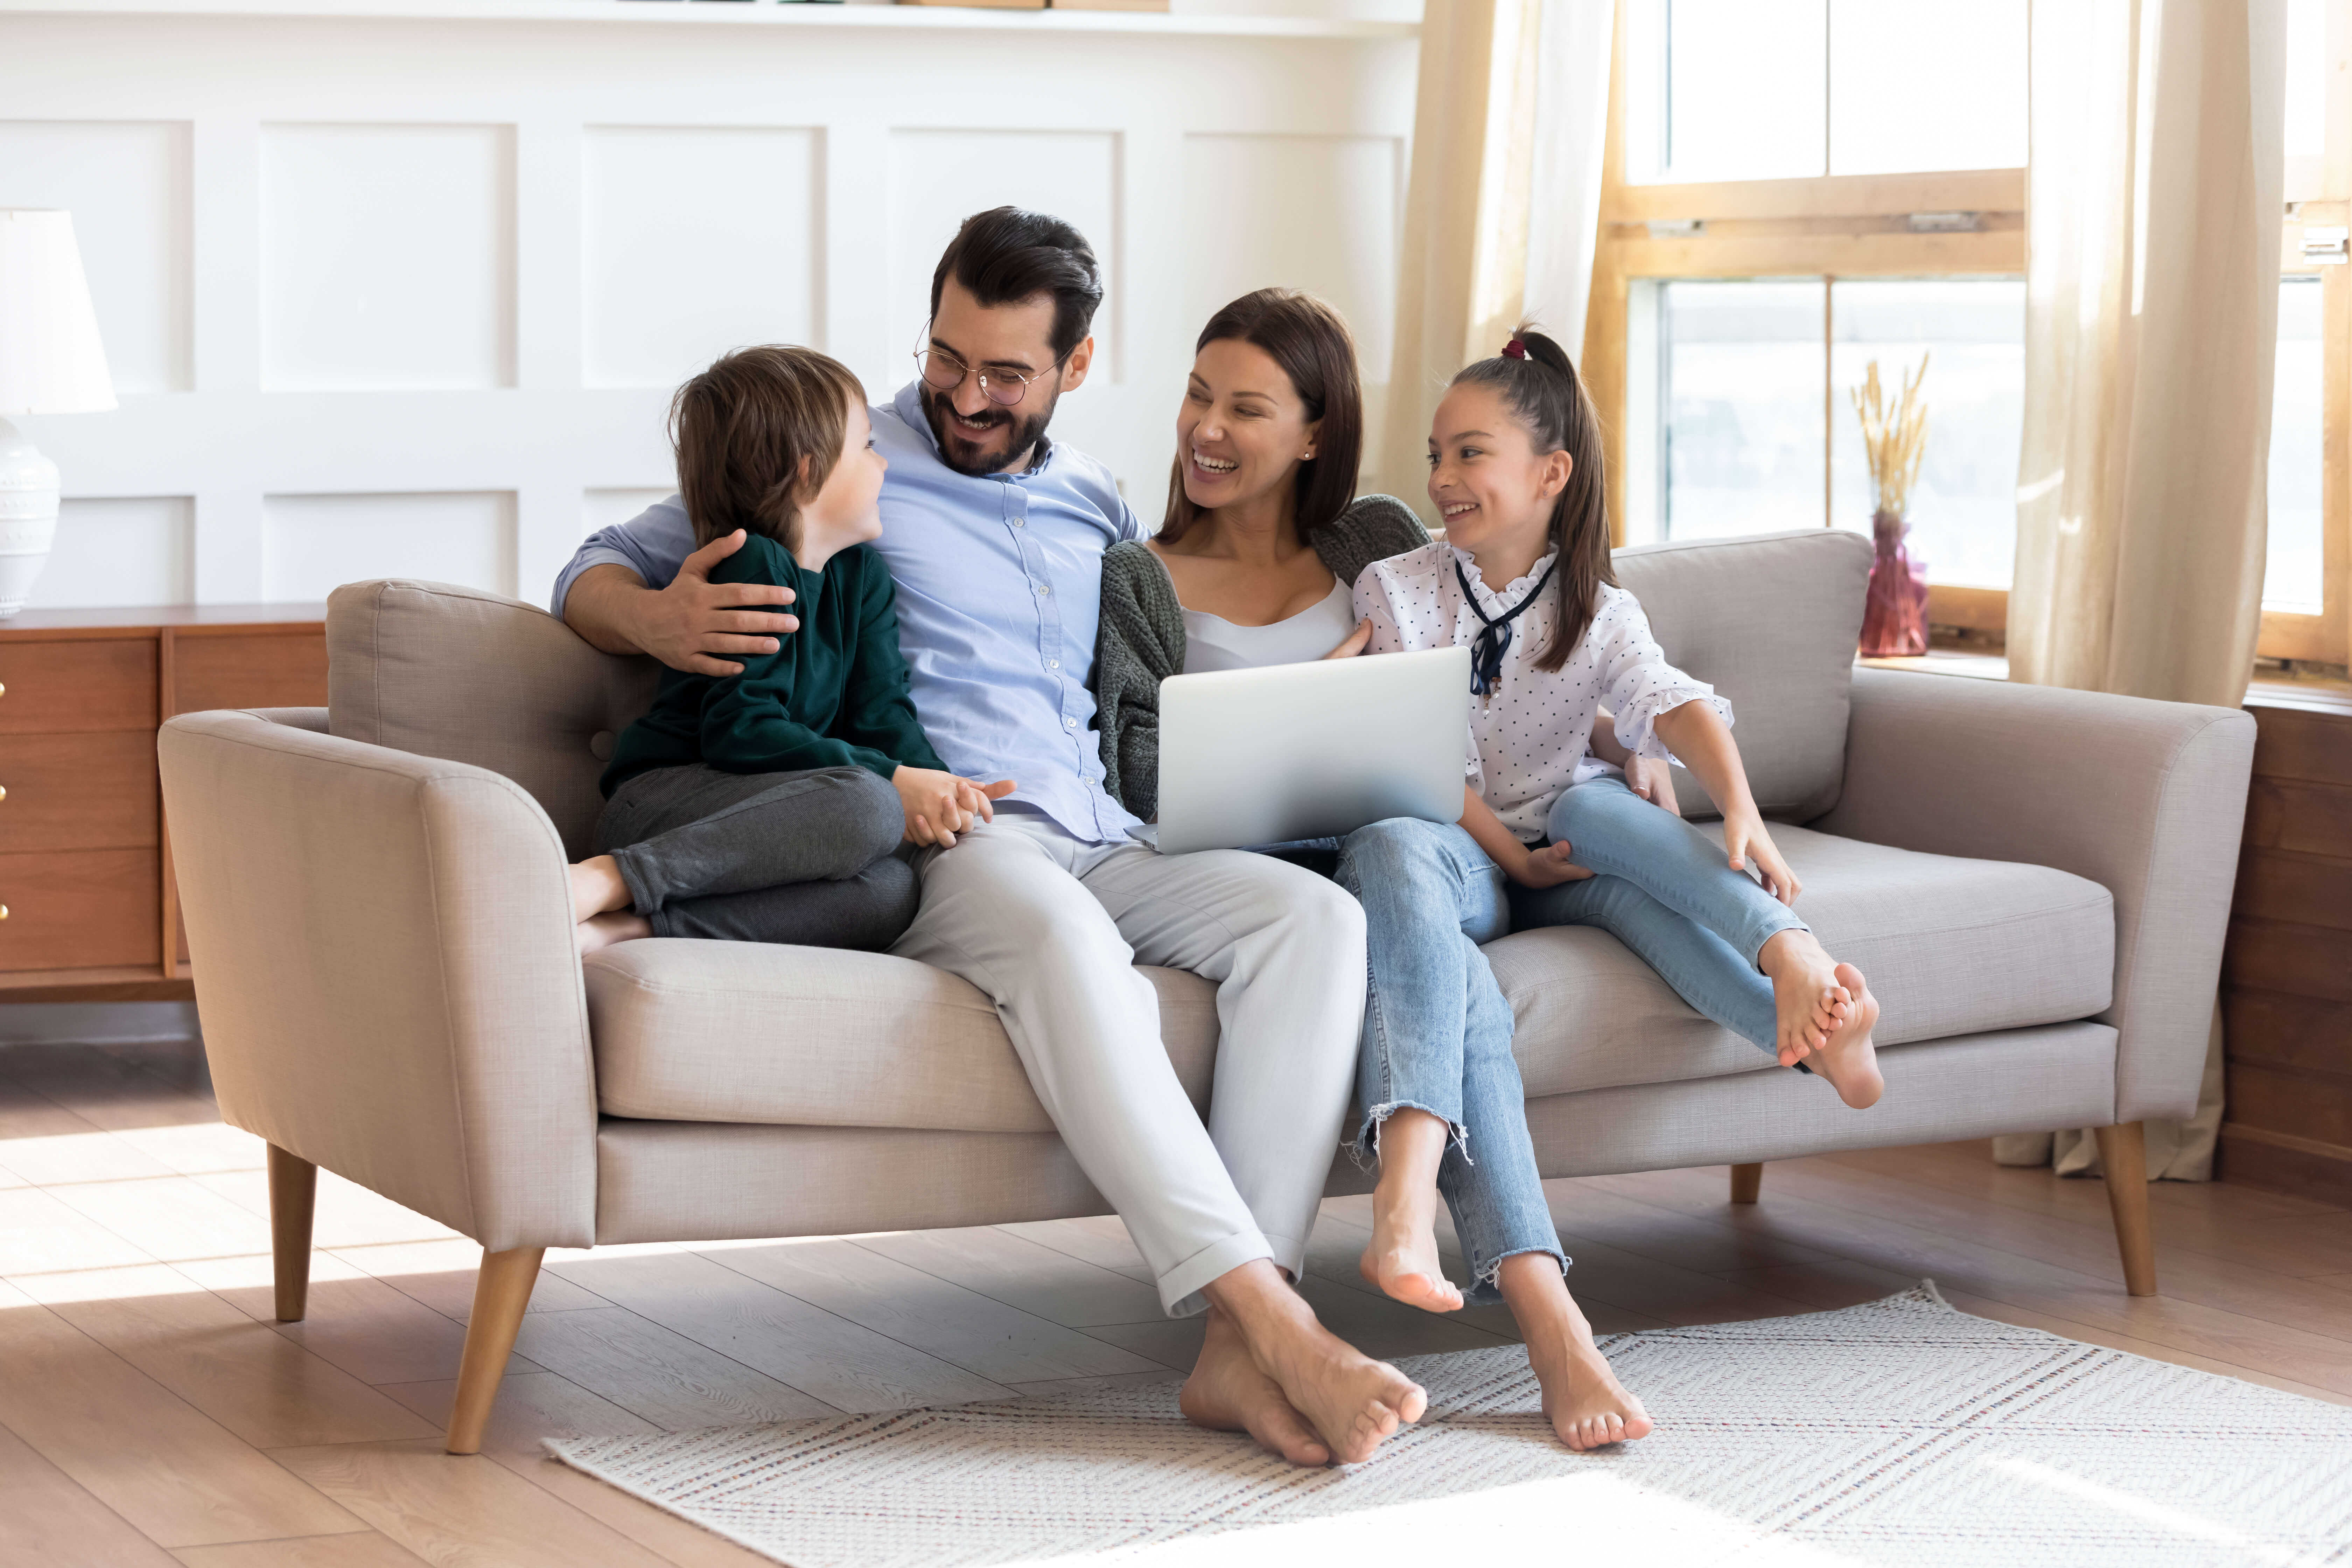 Family of four watching movie on laptop